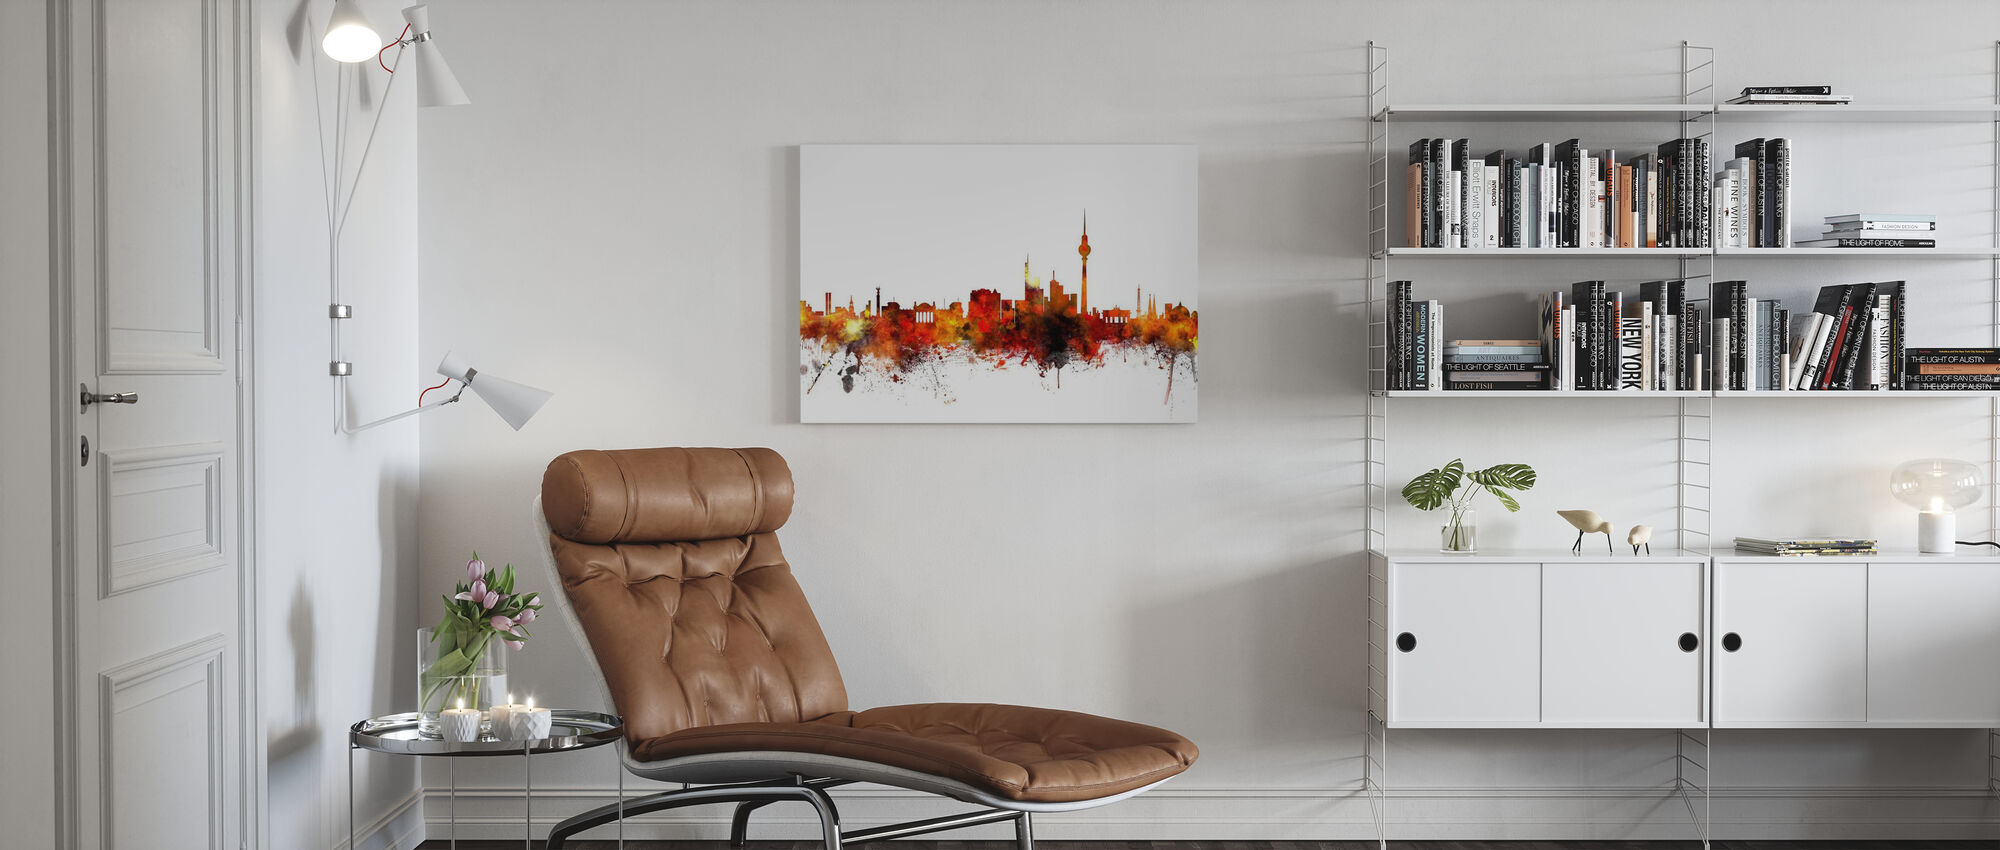 Berlin Skyline 2 - Canvas print - Living Room